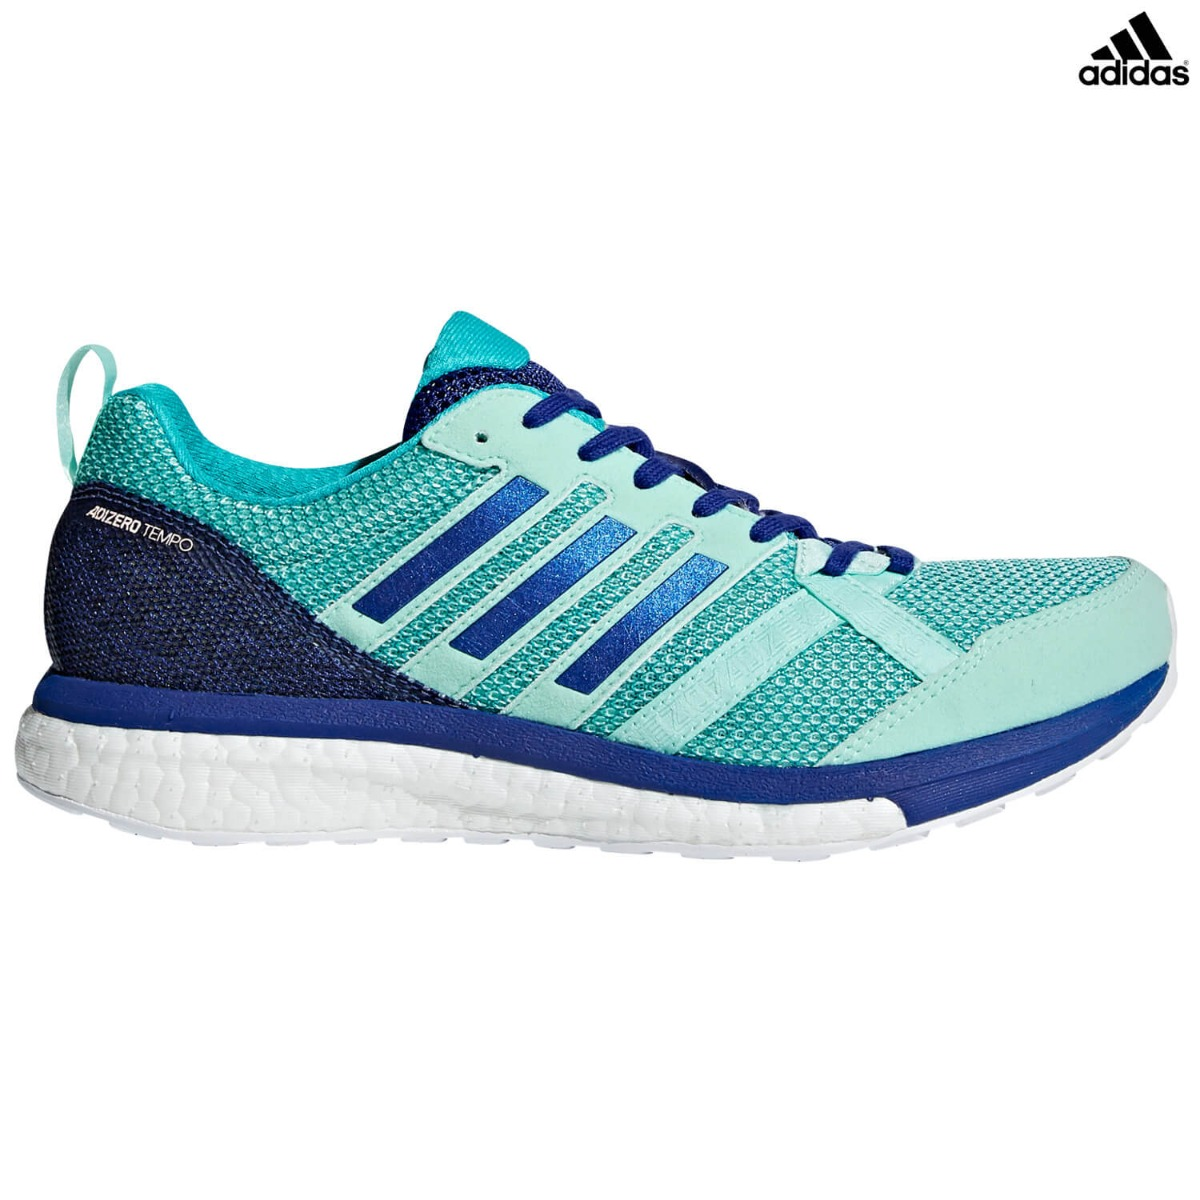 official photos fdc49 81615 adidas Adizero Tempo 9 Women's, mint/blue